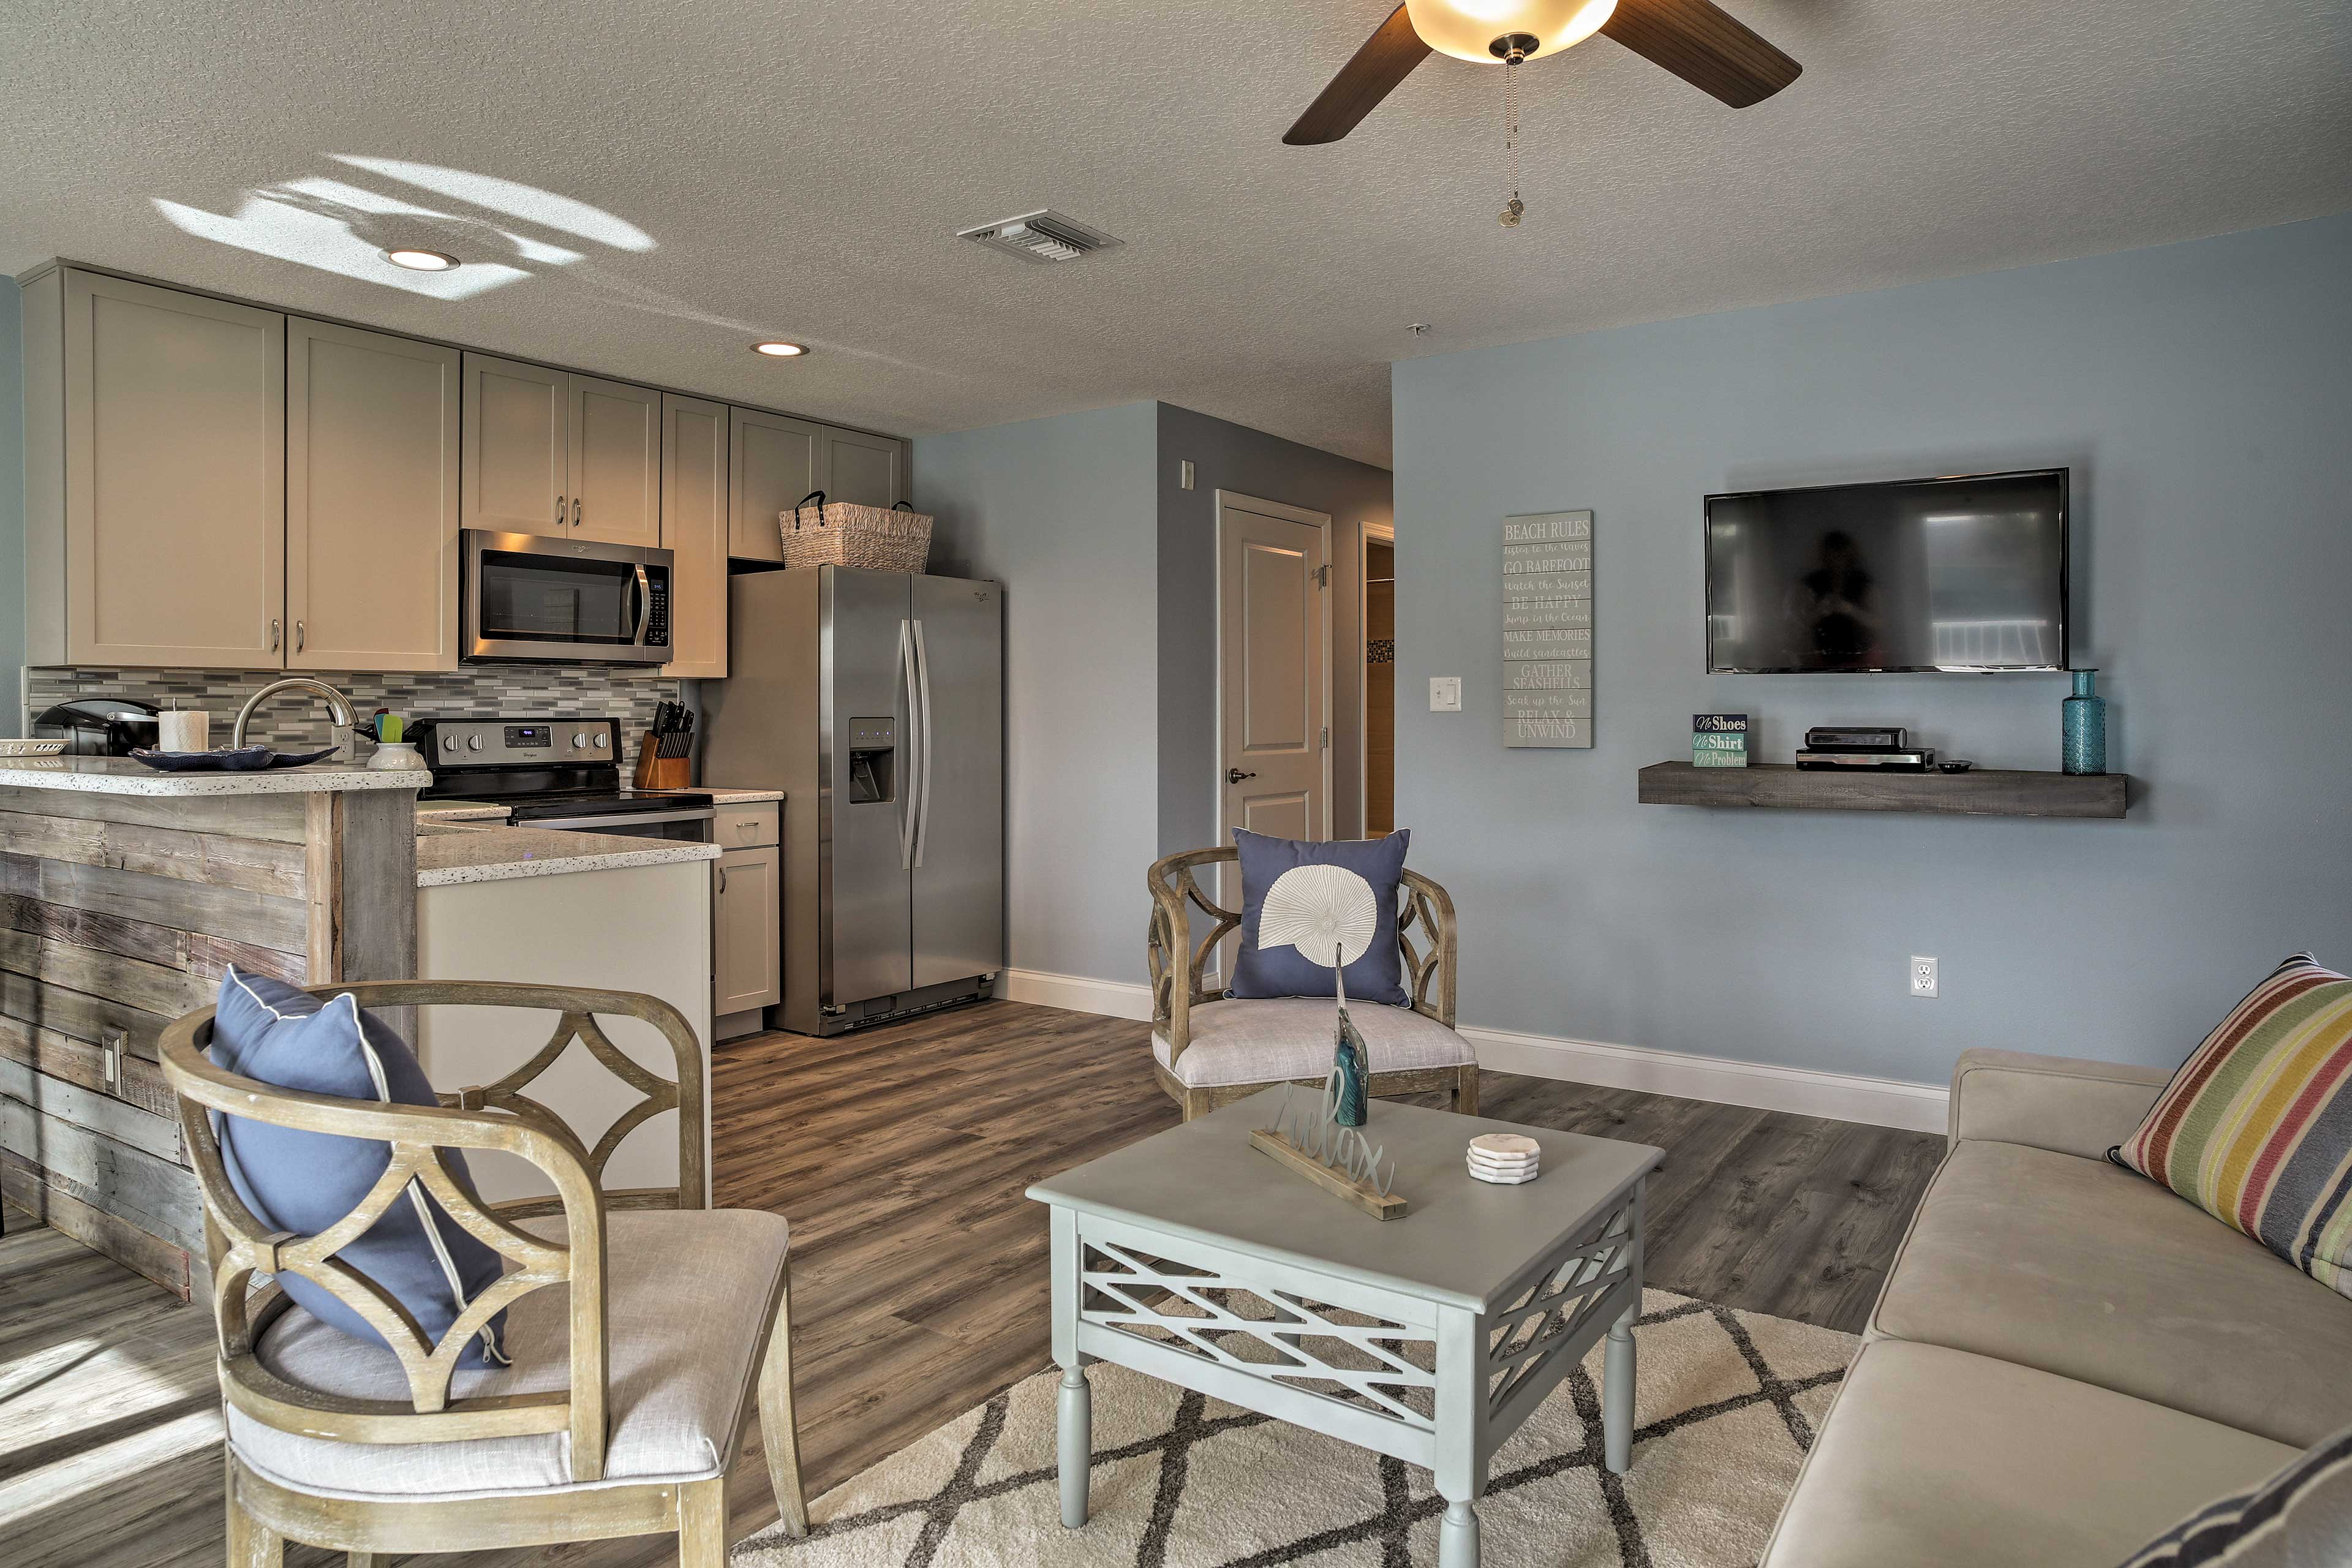 Cocoa Beach Vacation Rental Apt   2BR   2BA   1,000 Sq Ft   Stairs Required